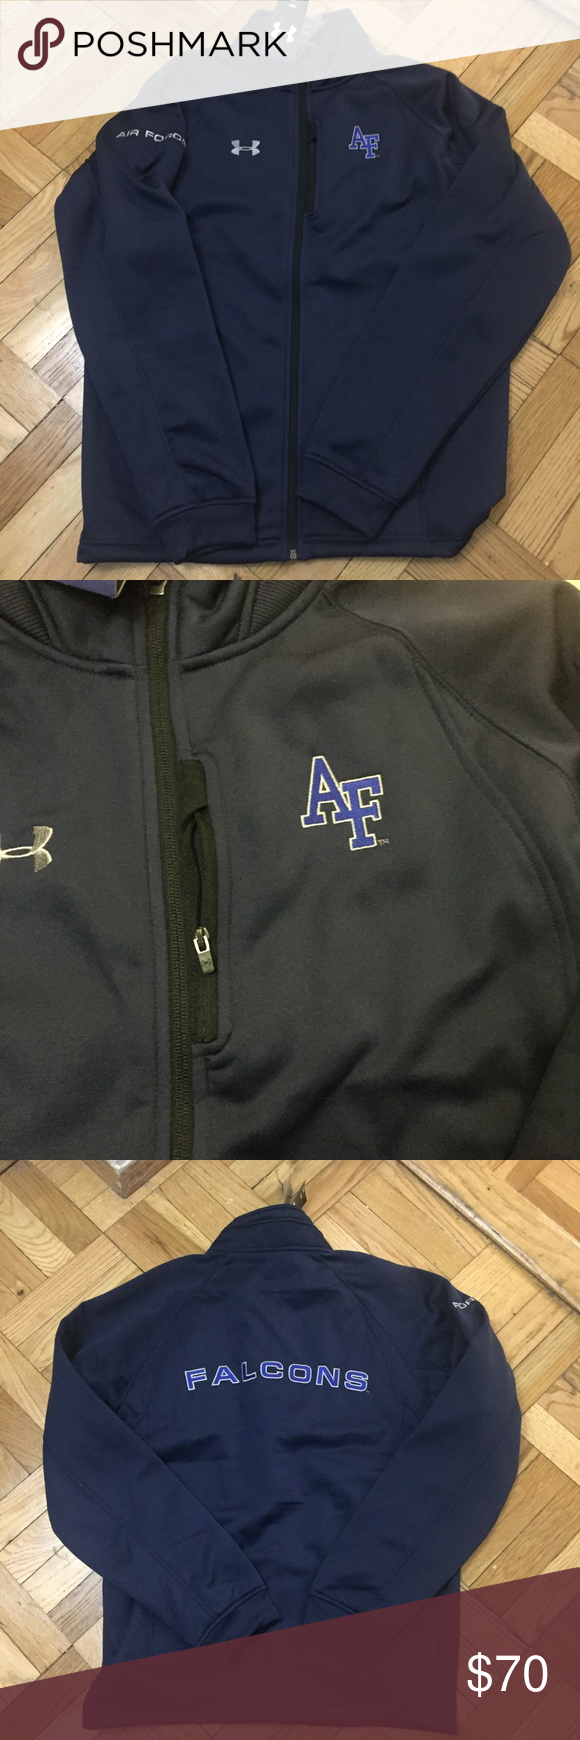 Under Armour Air Force Falcons ZipUp Jacket Integrity